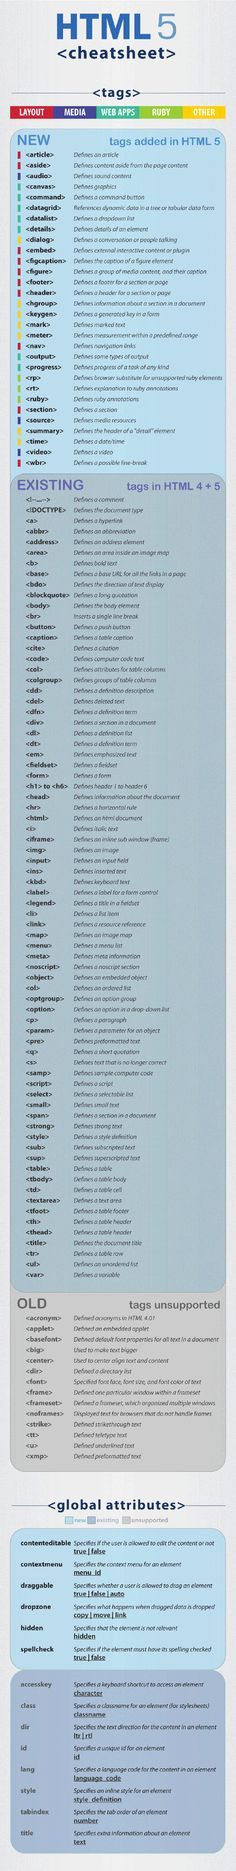 HTML cheatsheet. It's like a bible!!! This is totally going to come in handy at work--print please. @terrawaldroup